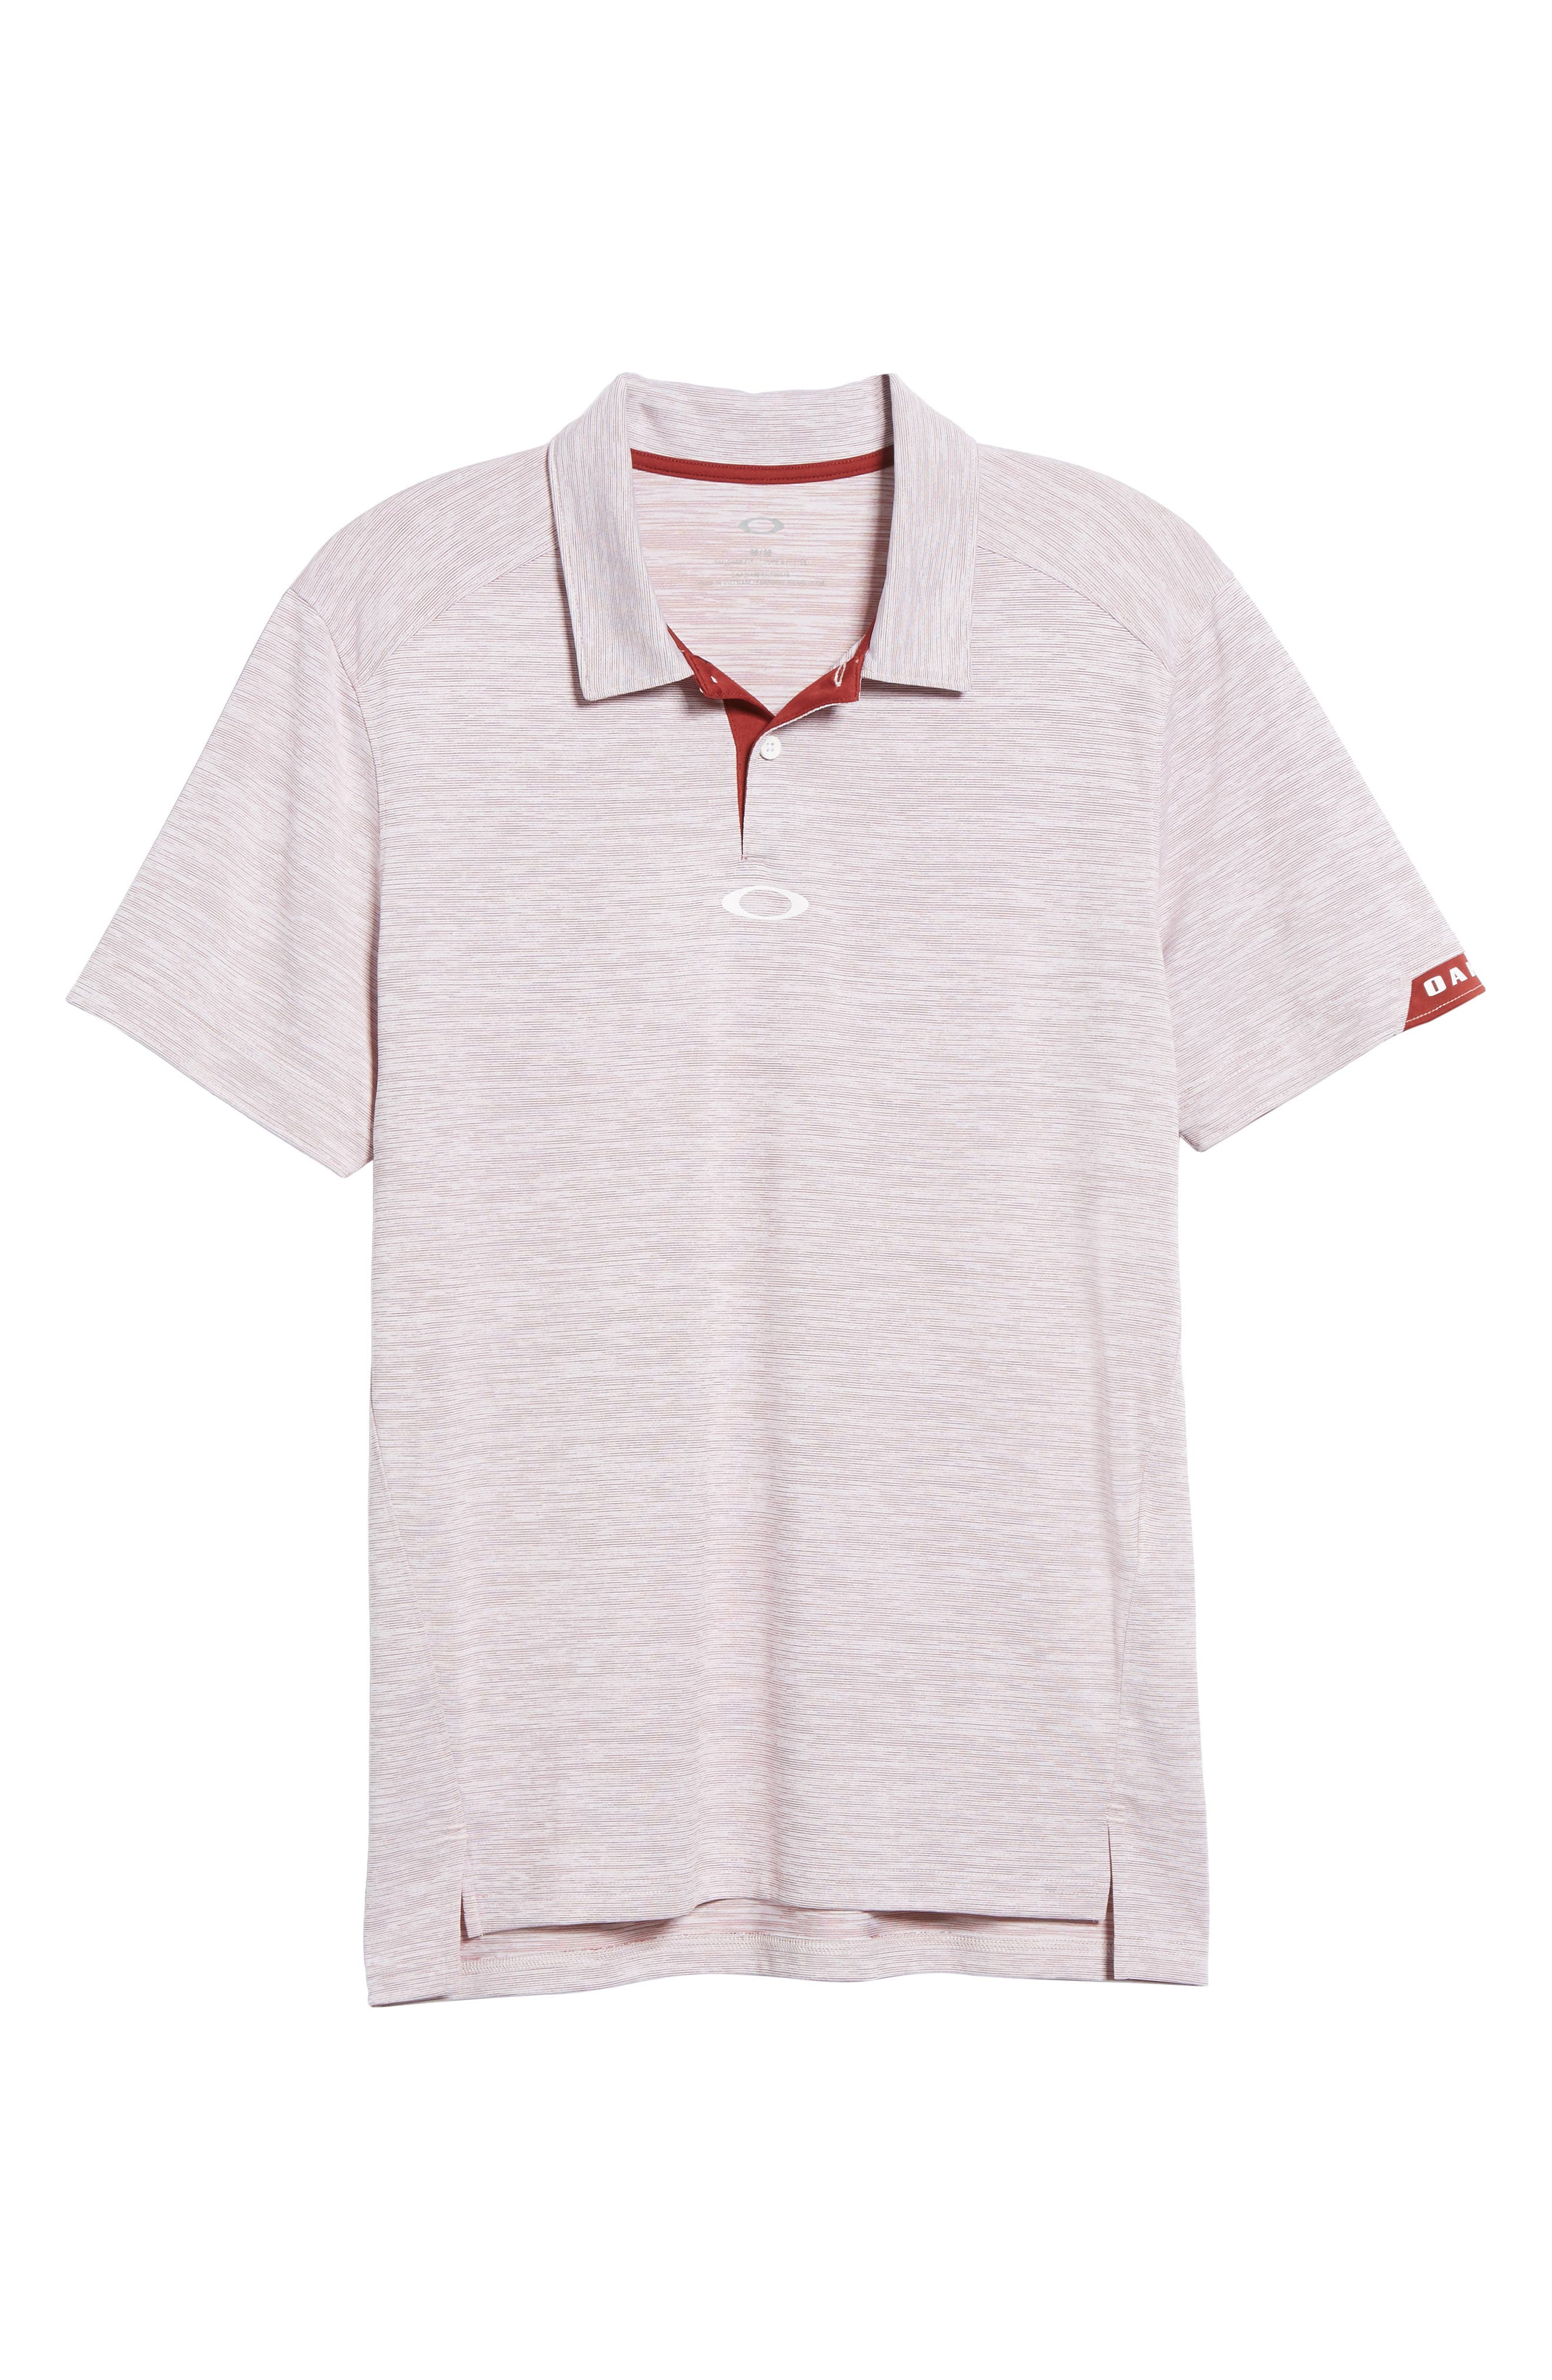 Gravity Polo Shirt,                             Alternate thumbnail 6, color,                             Iron Red